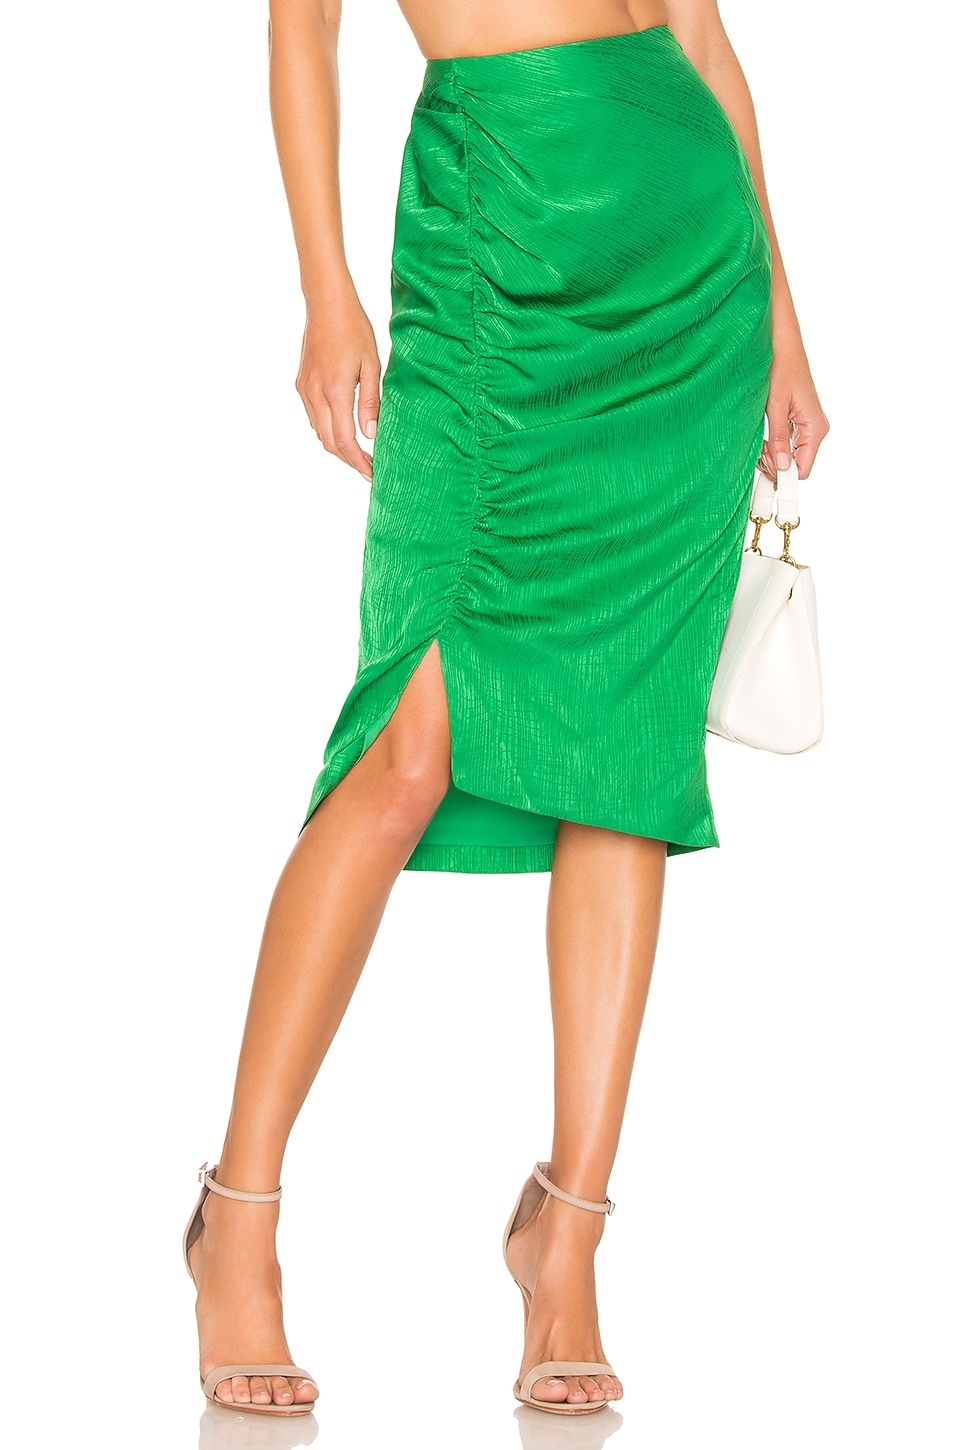 House of Harlow 1960 JUPE MIDI TAILLE HAUTE ROOS